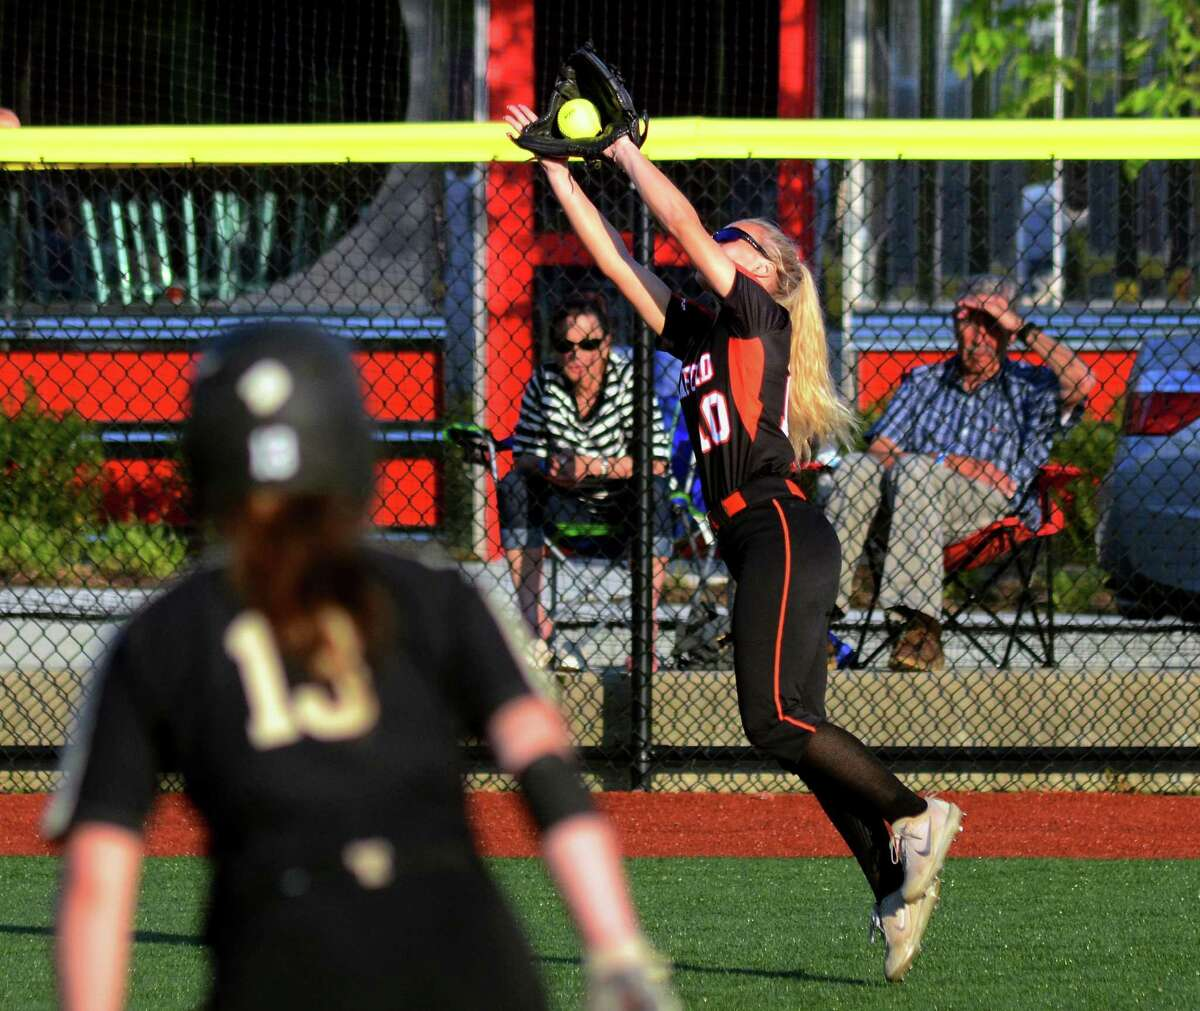 Stamford's Brycelin Stalteri cathces a Trumbull pop-fly during the FCIAC semifinals on Thursday.